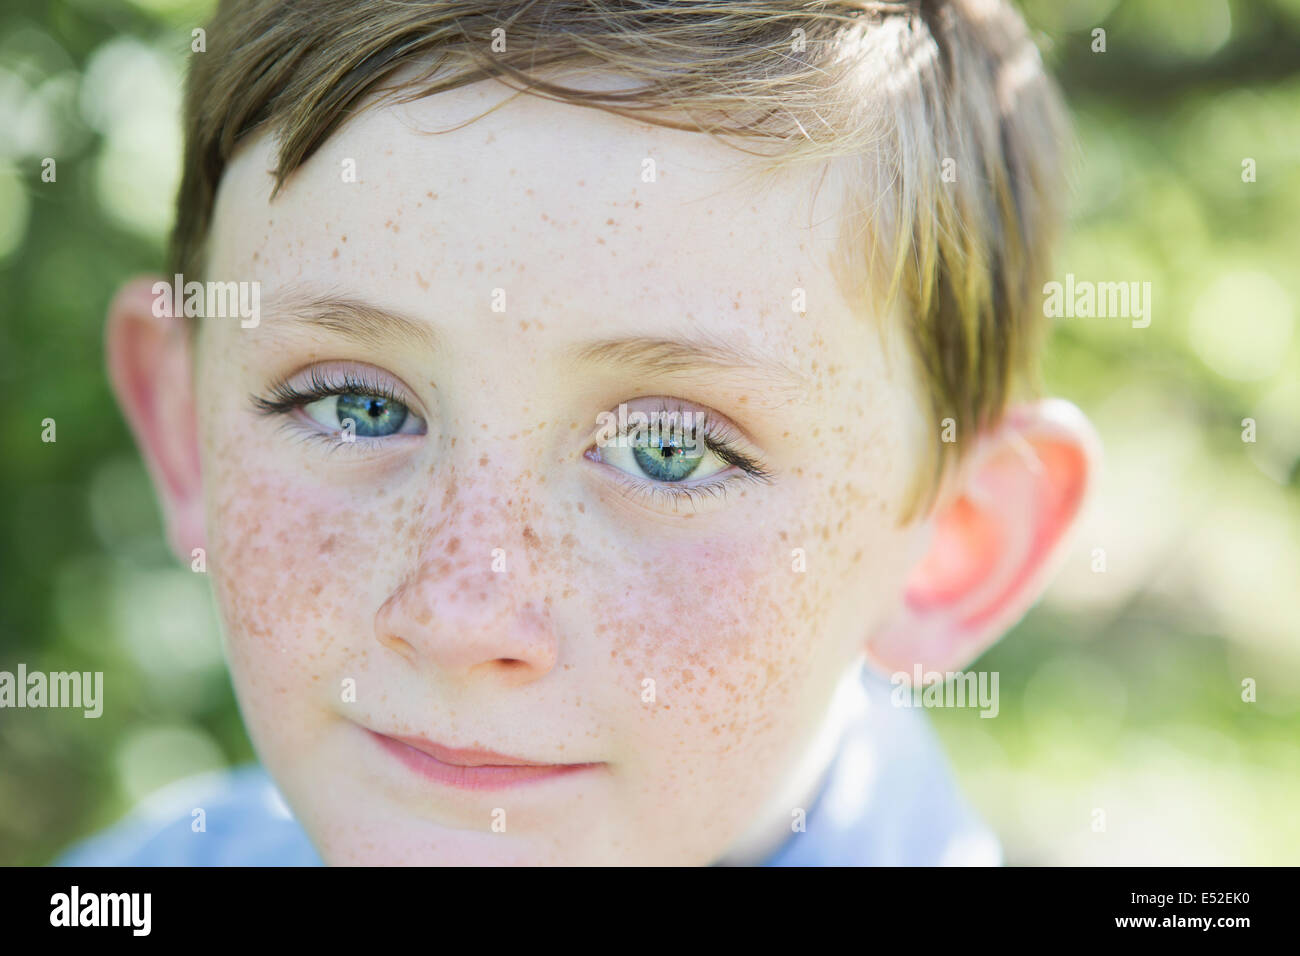 Portrait of a young boy with red hair, blue eyes and freckles on his nose. - Stock Image